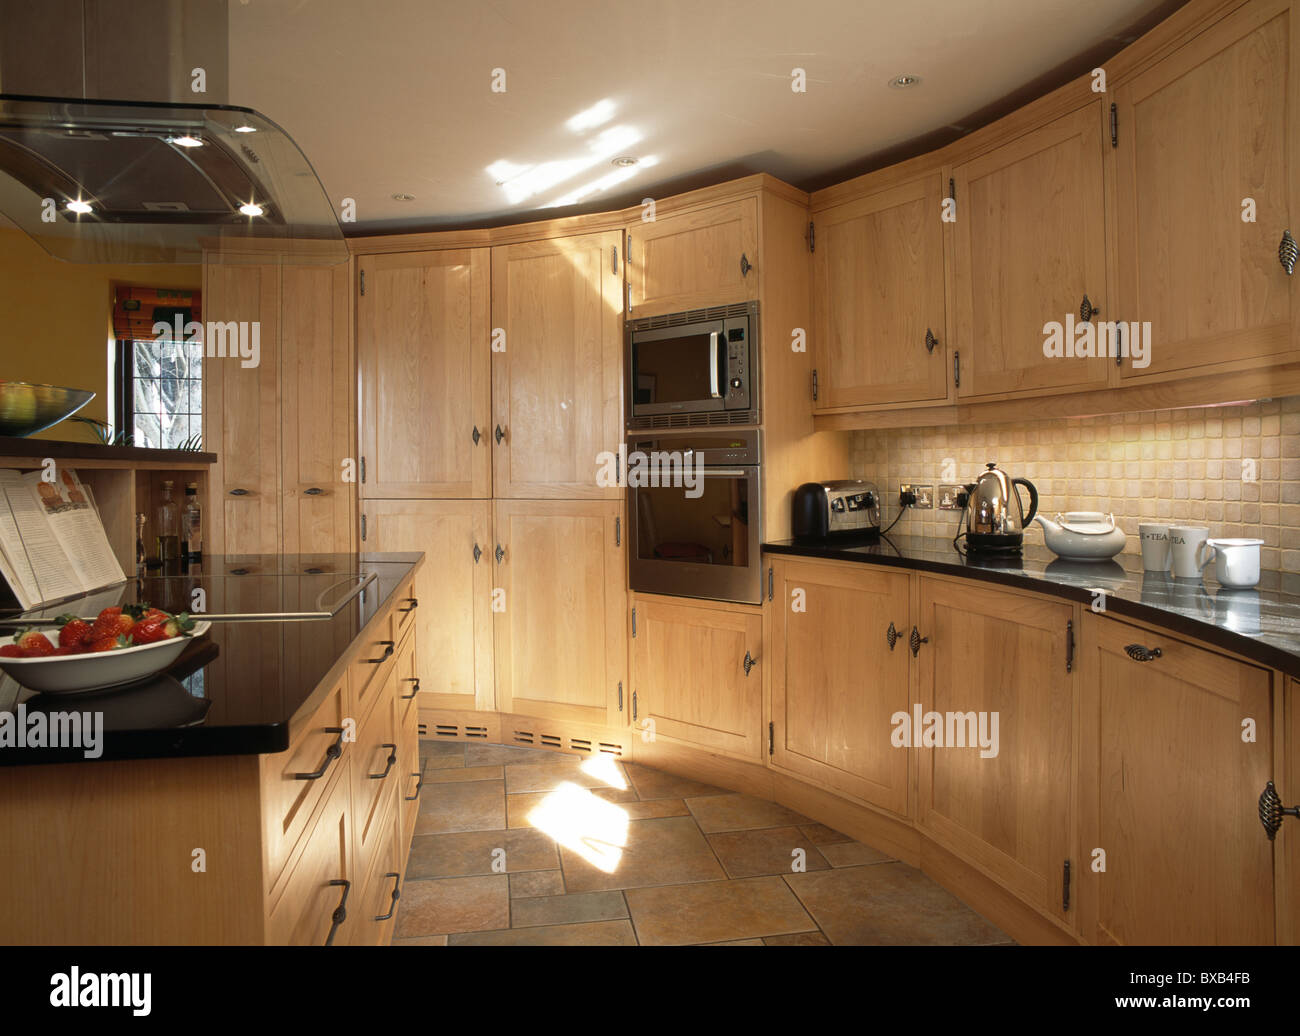 Cream Townhouse Kitchen With Pale Wood Fitted Units On Curved Wall Stock Photo Alamy